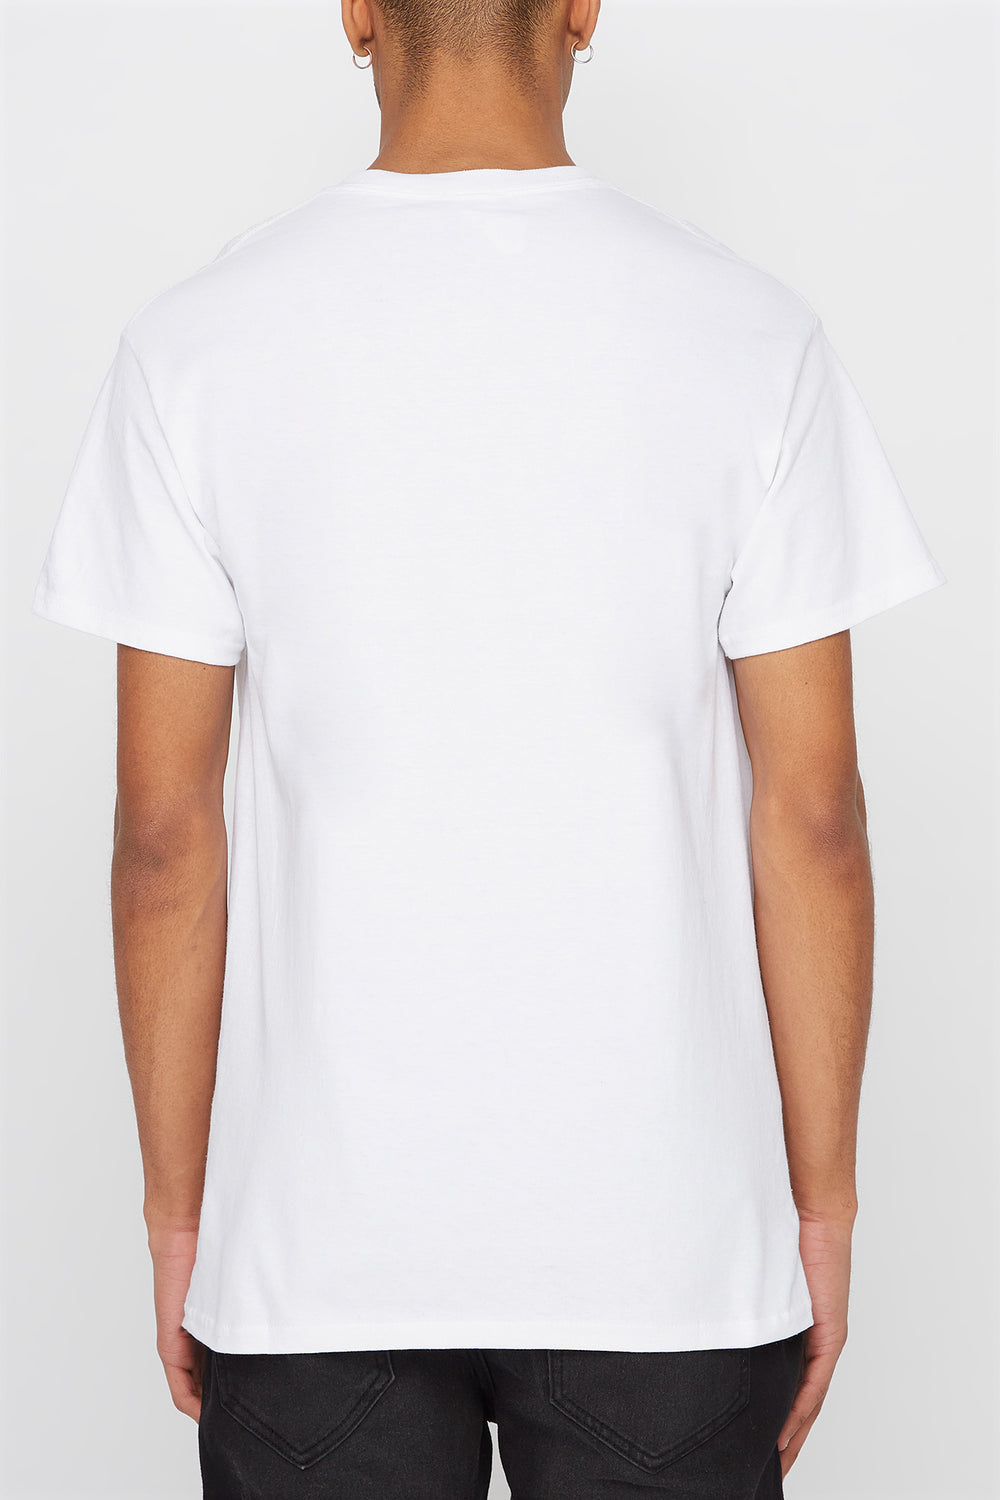 Thrasher Mens Still Watchin' T-Shirt White